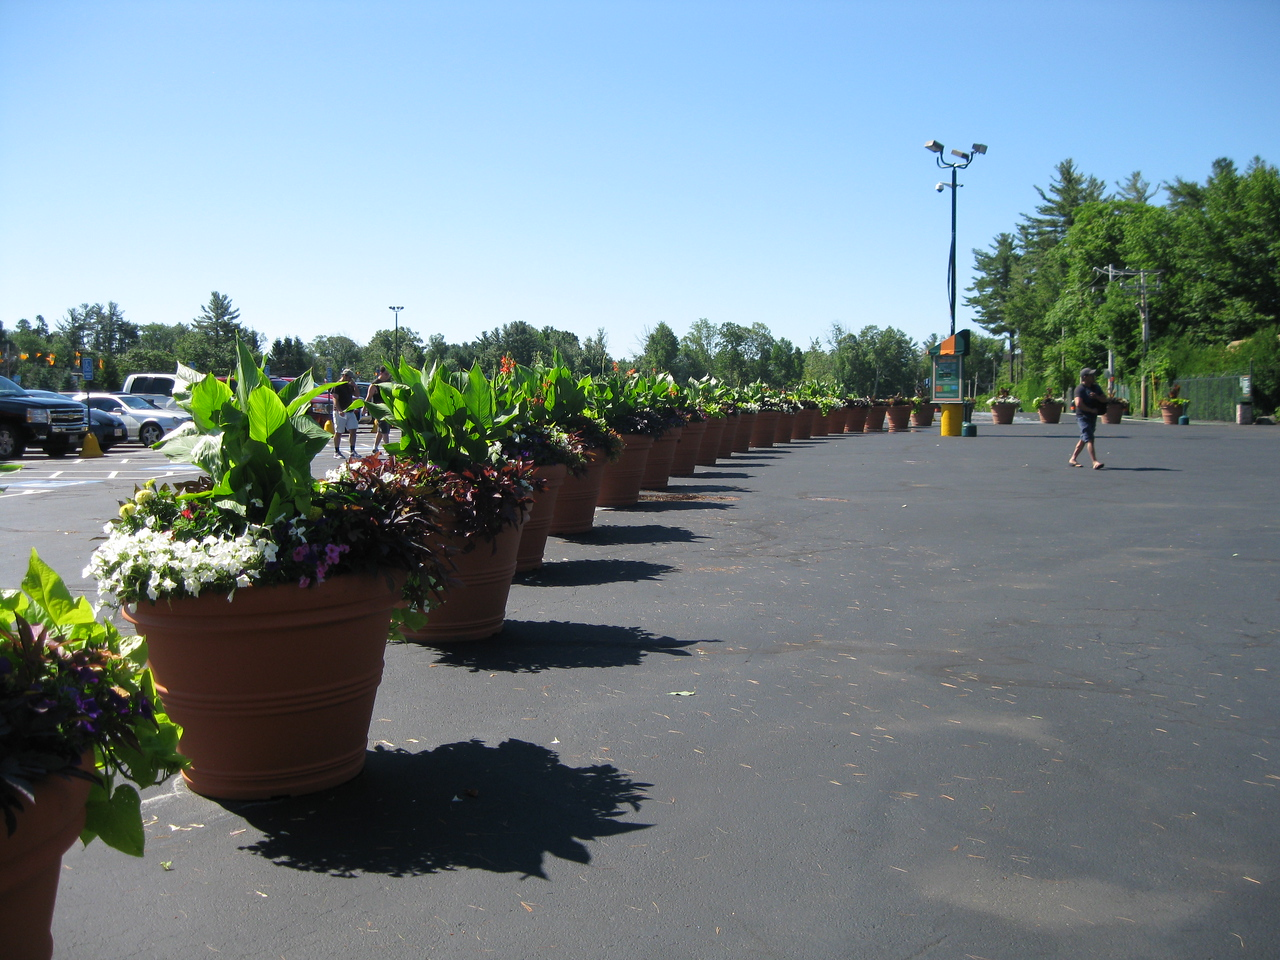 Planters used to block traffic from getting close to the entrance.